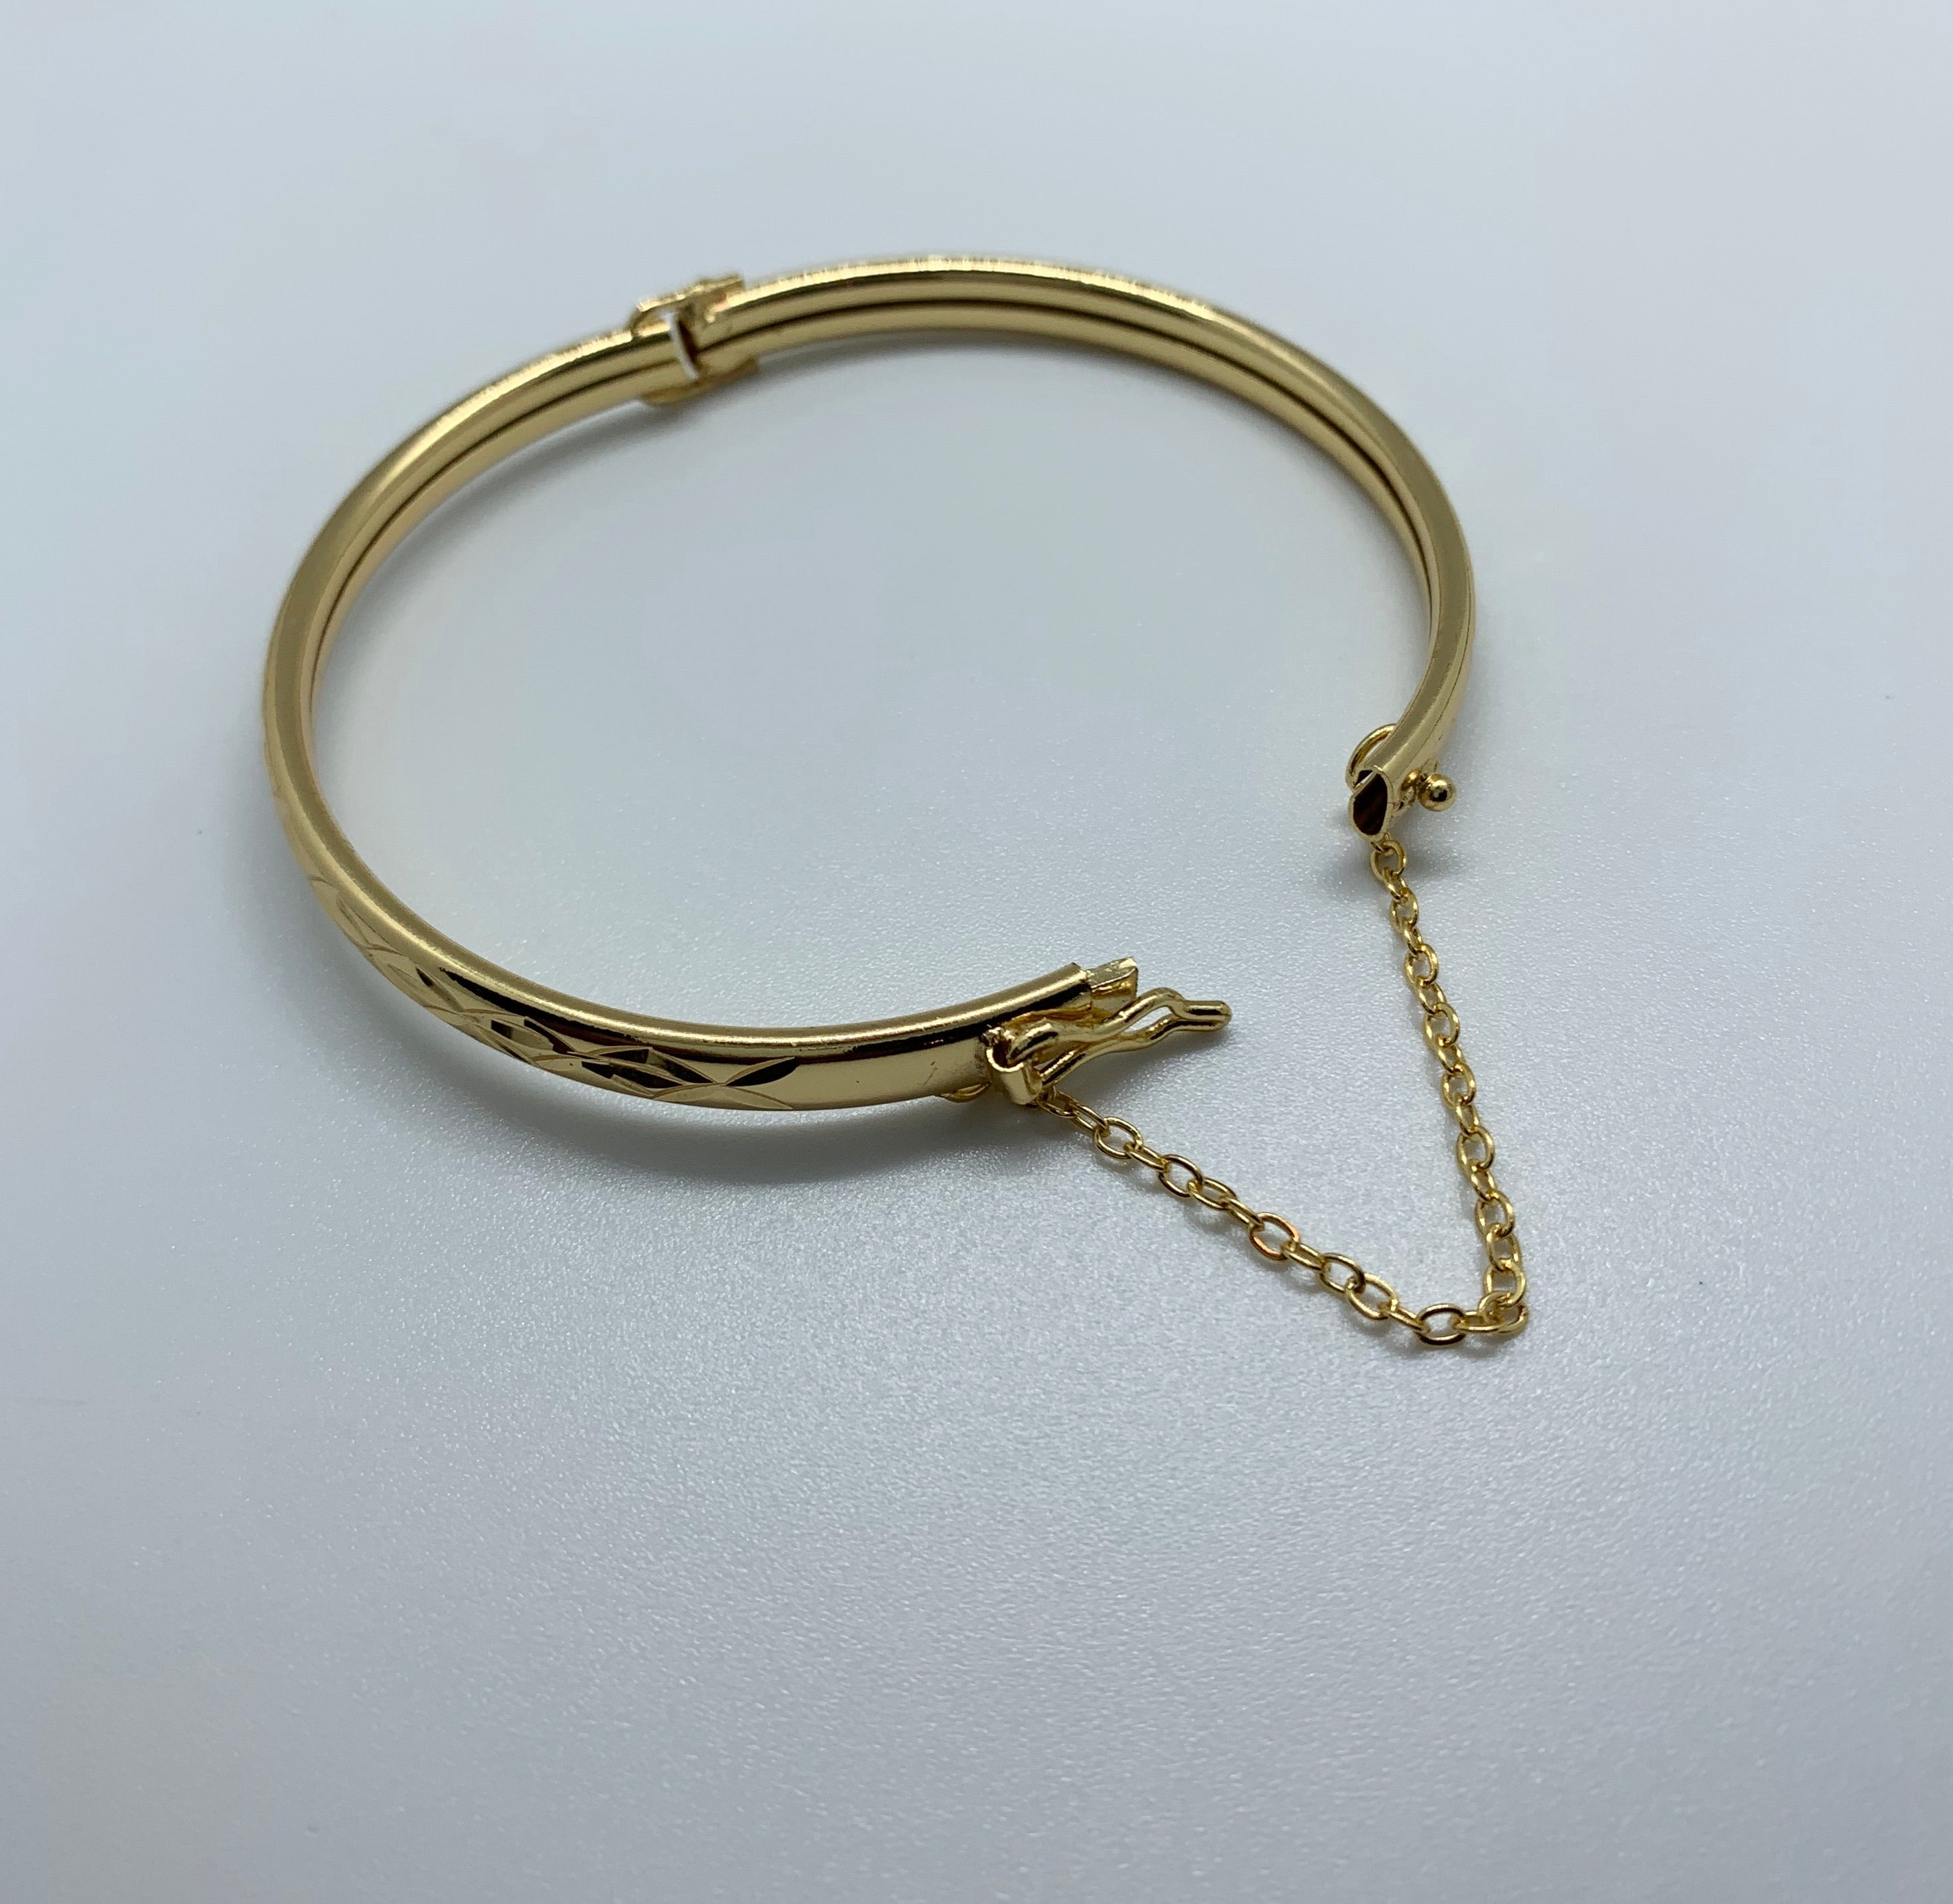 Diamond Cut Bangle